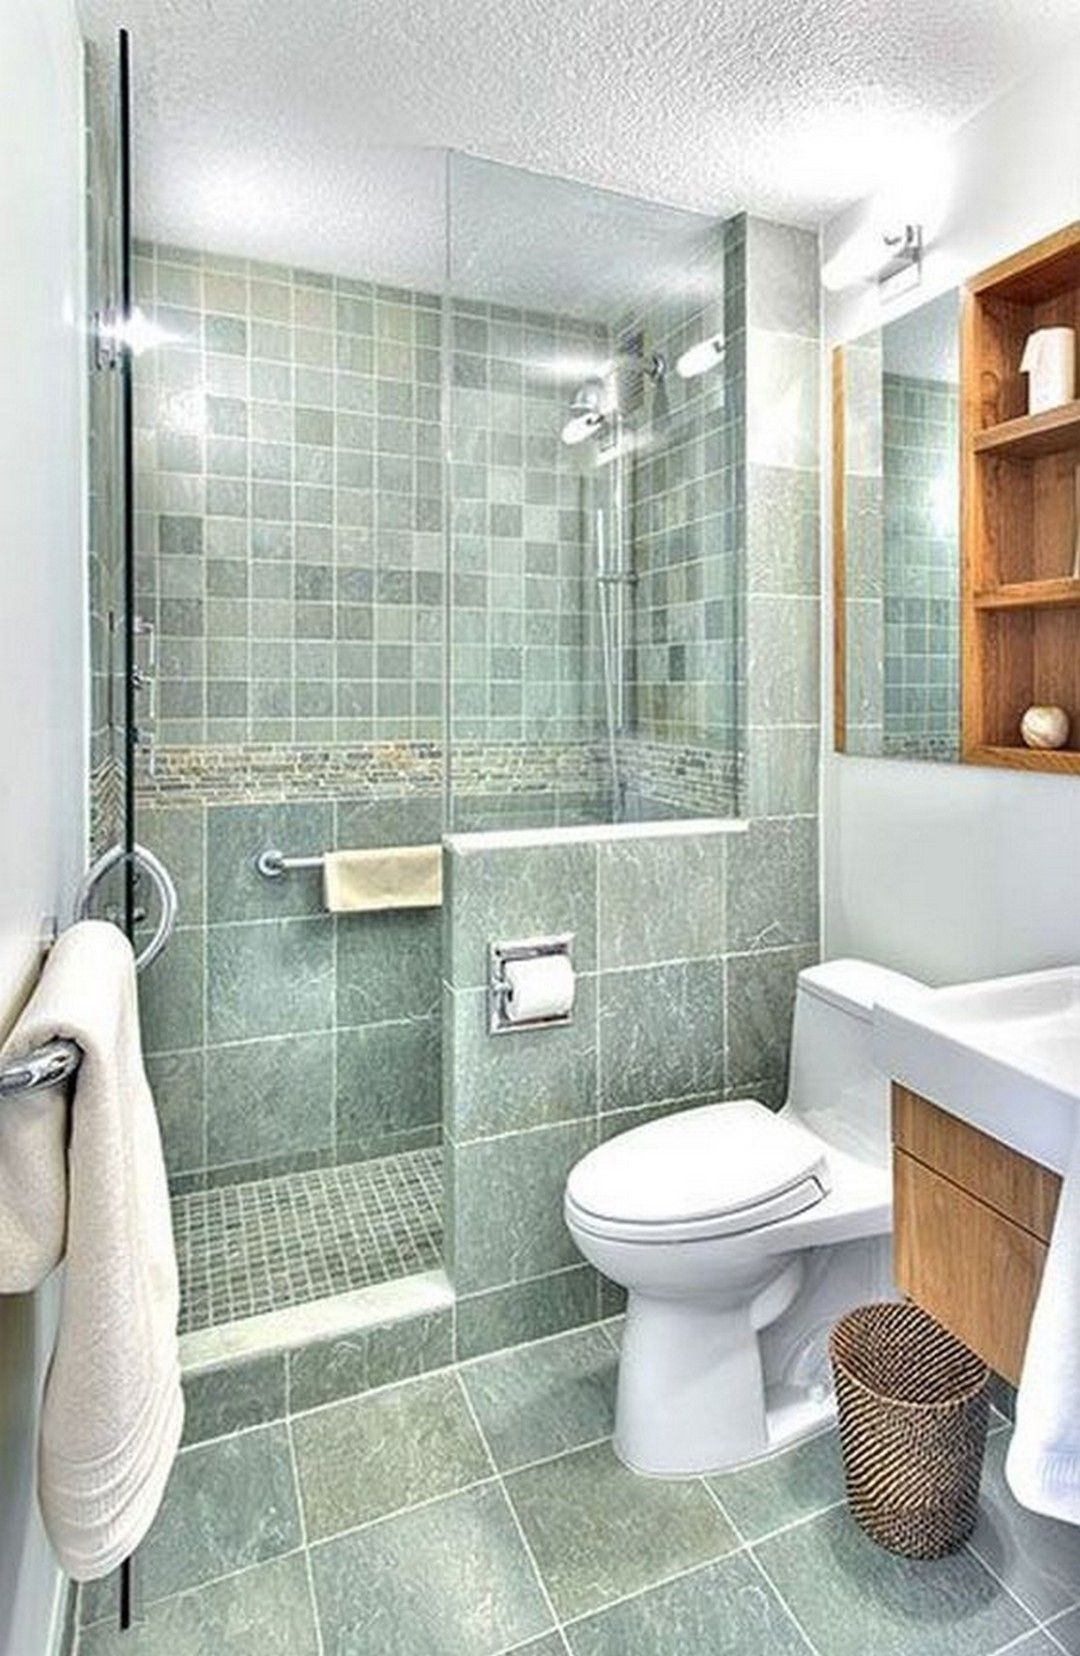 10 change your old style bathroom with this small master on cool small bathroom design ideas id=84730